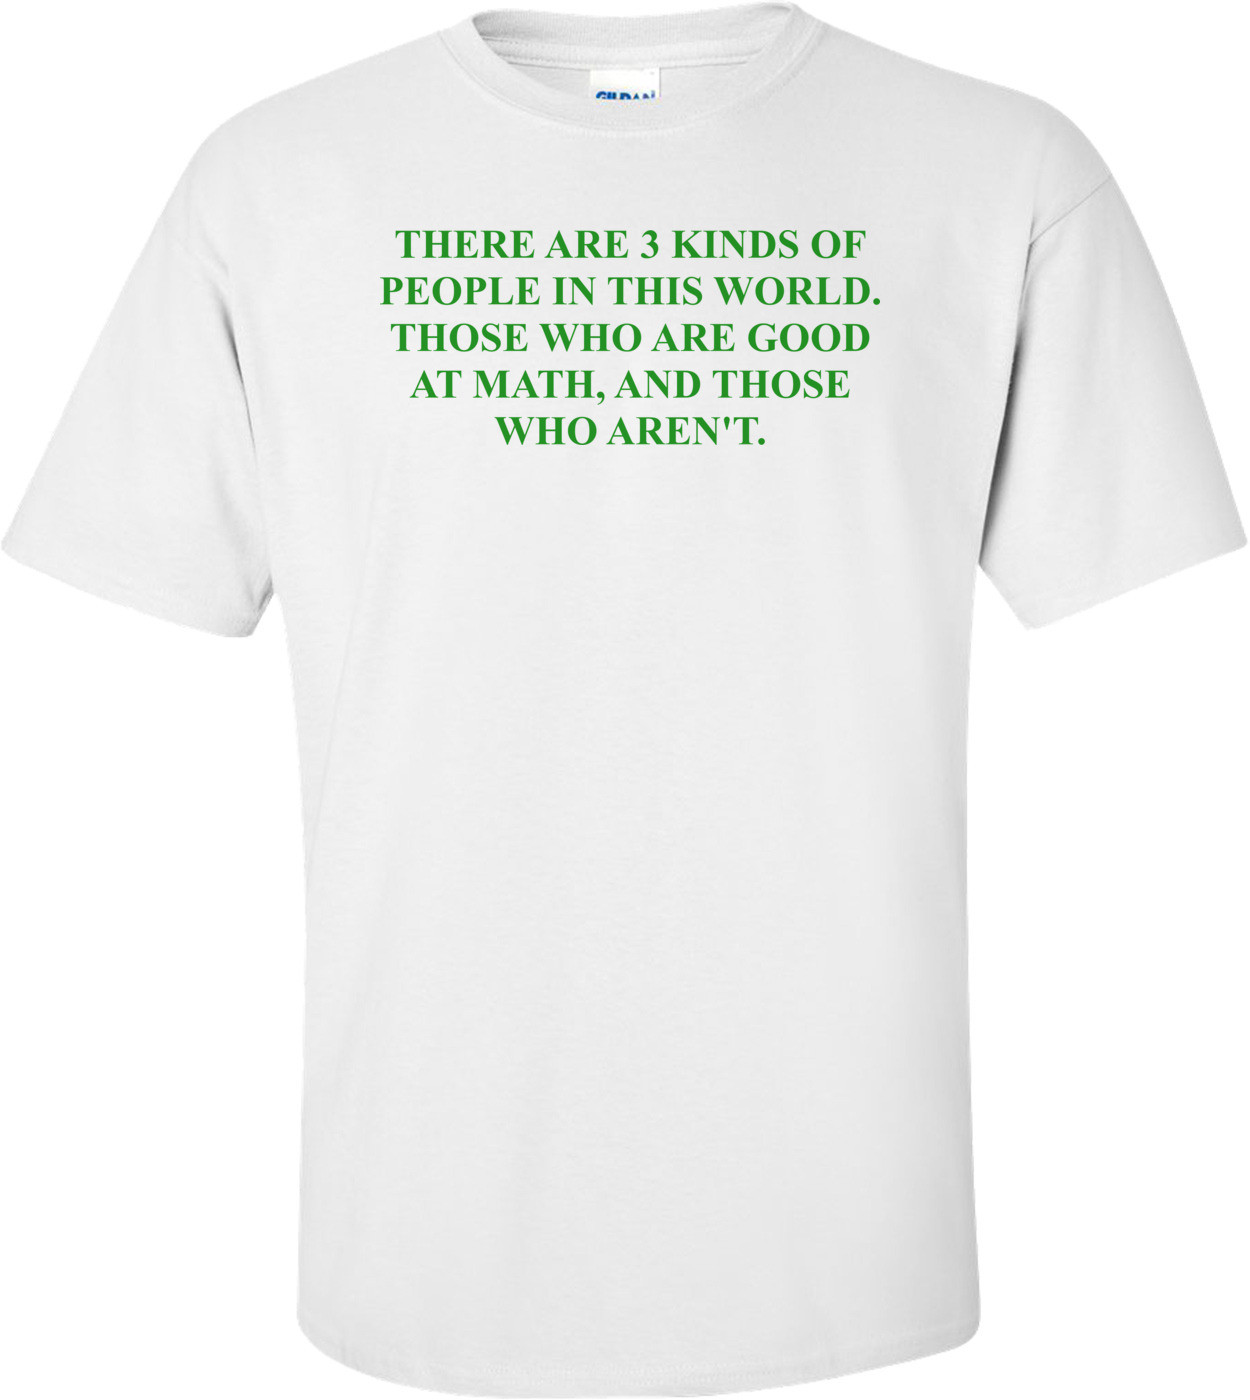 THERE ARE 3 KINDS OF PEOPLE IN THIS WORLD. THOSE WHO ARE GOOD AT MATH, AND THOSE WHO AREN'T. Shirt